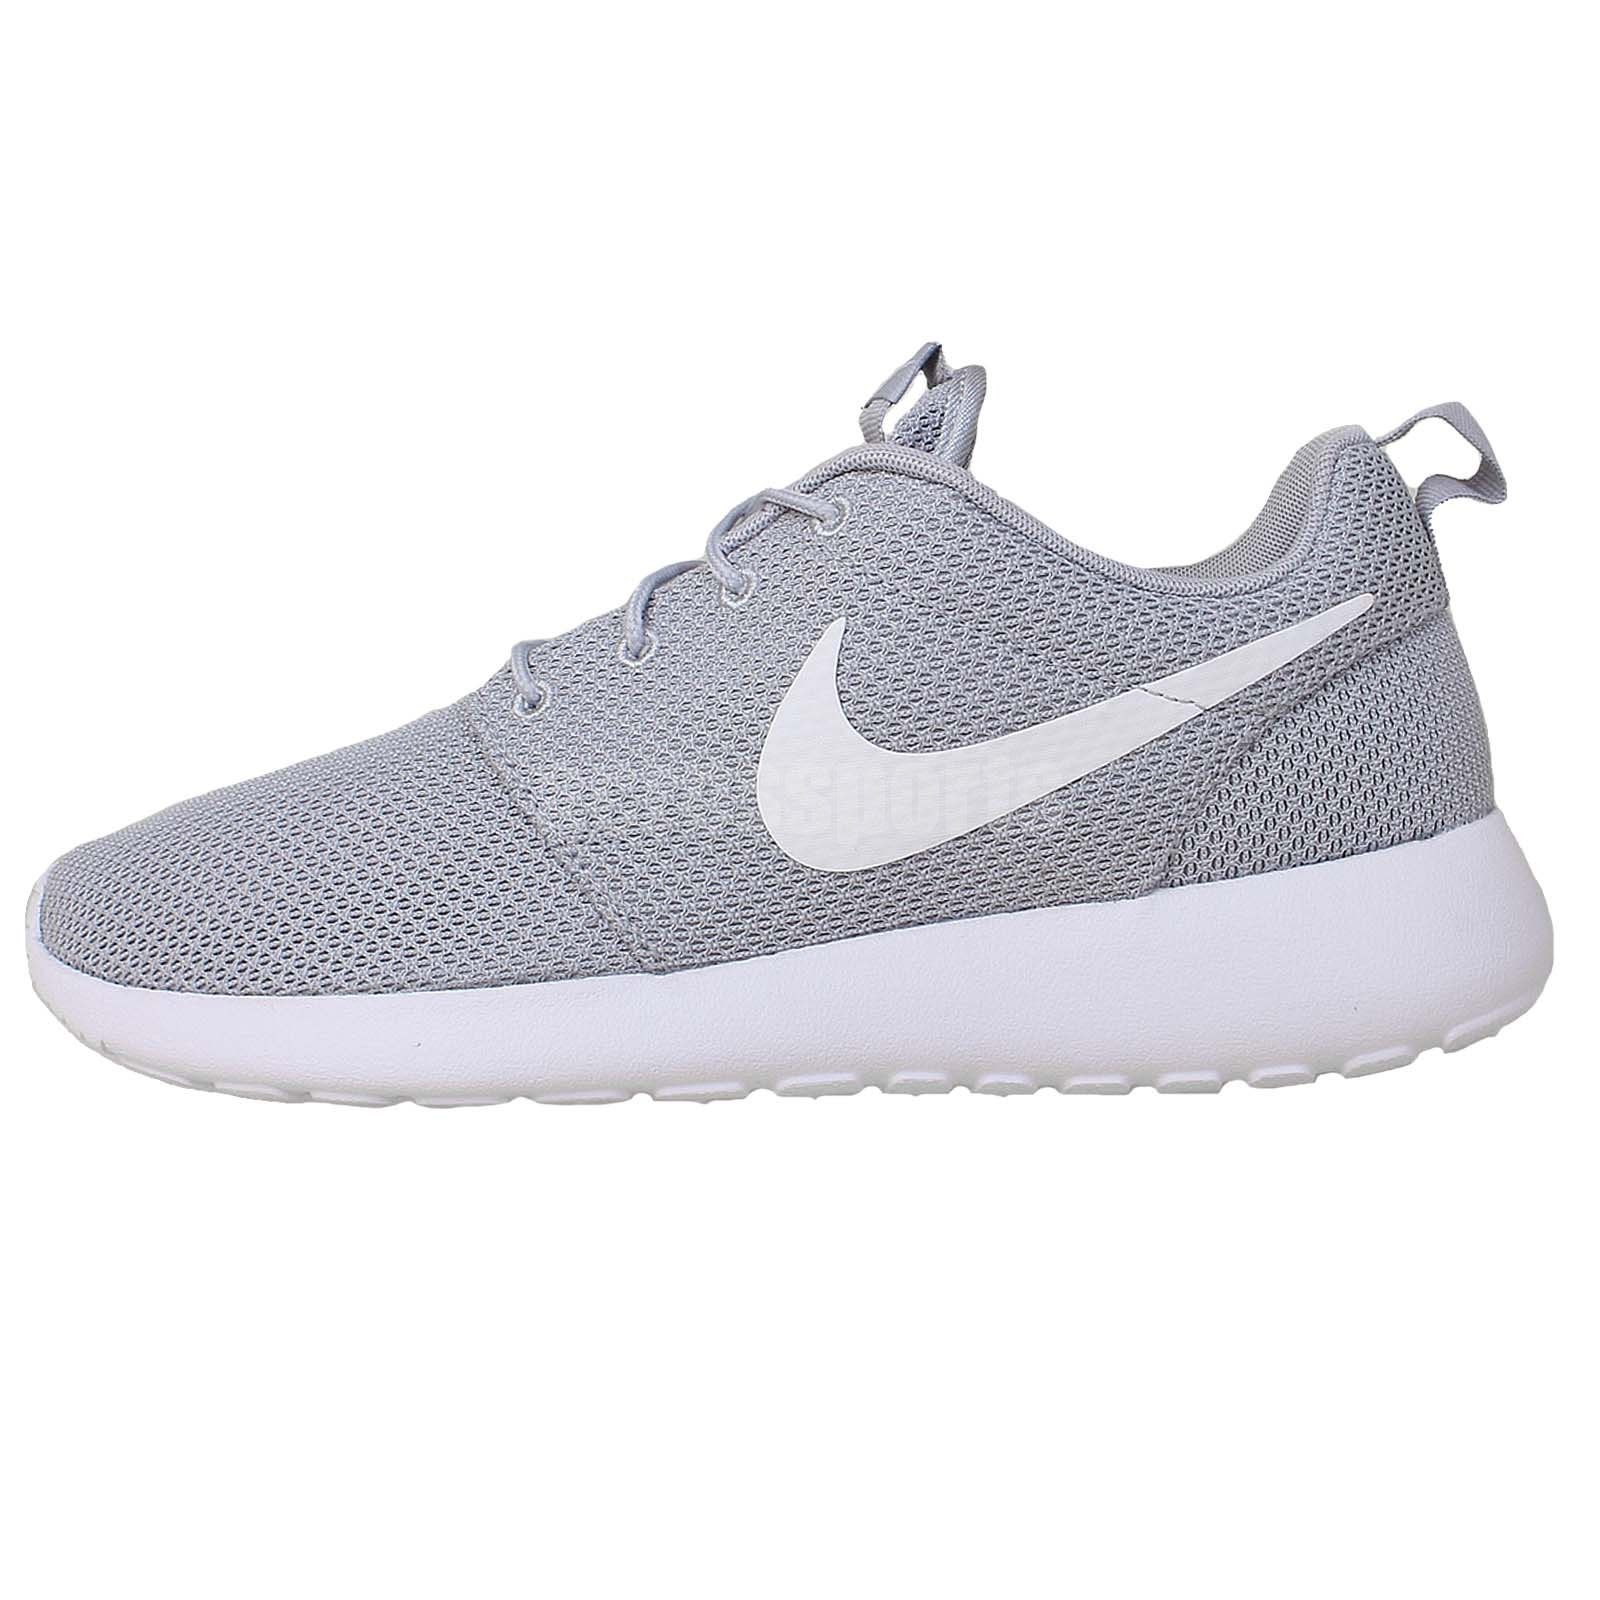 nike rosherun roshe one run grey white mens running shoes. Black Bedroom Furniture Sets. Home Design Ideas